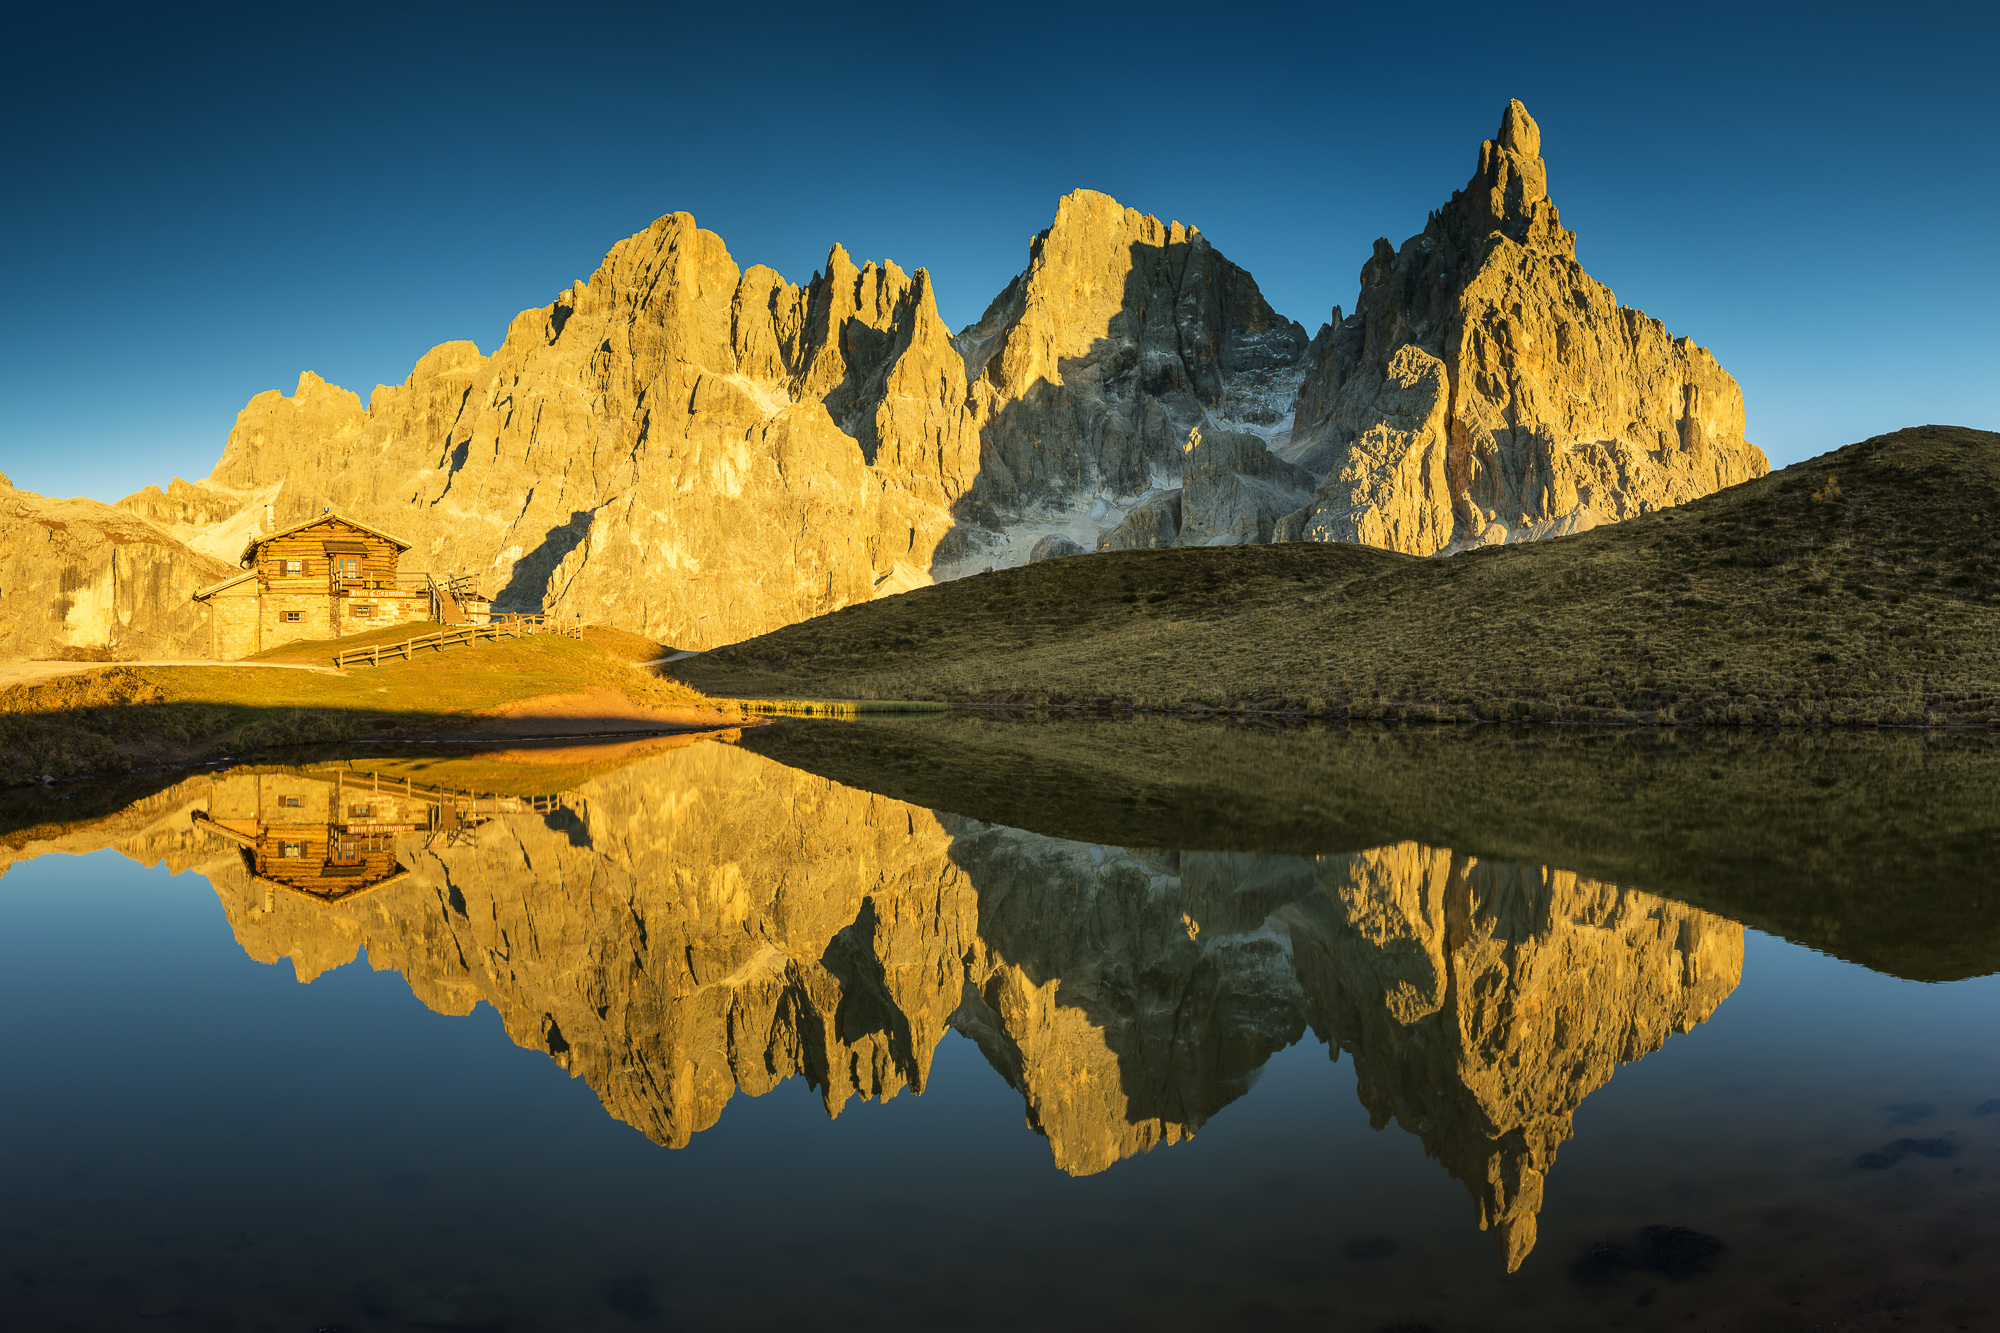 Pale di San Martino Reflecting in Lake, Passo Rolle, Dolomites, Italy